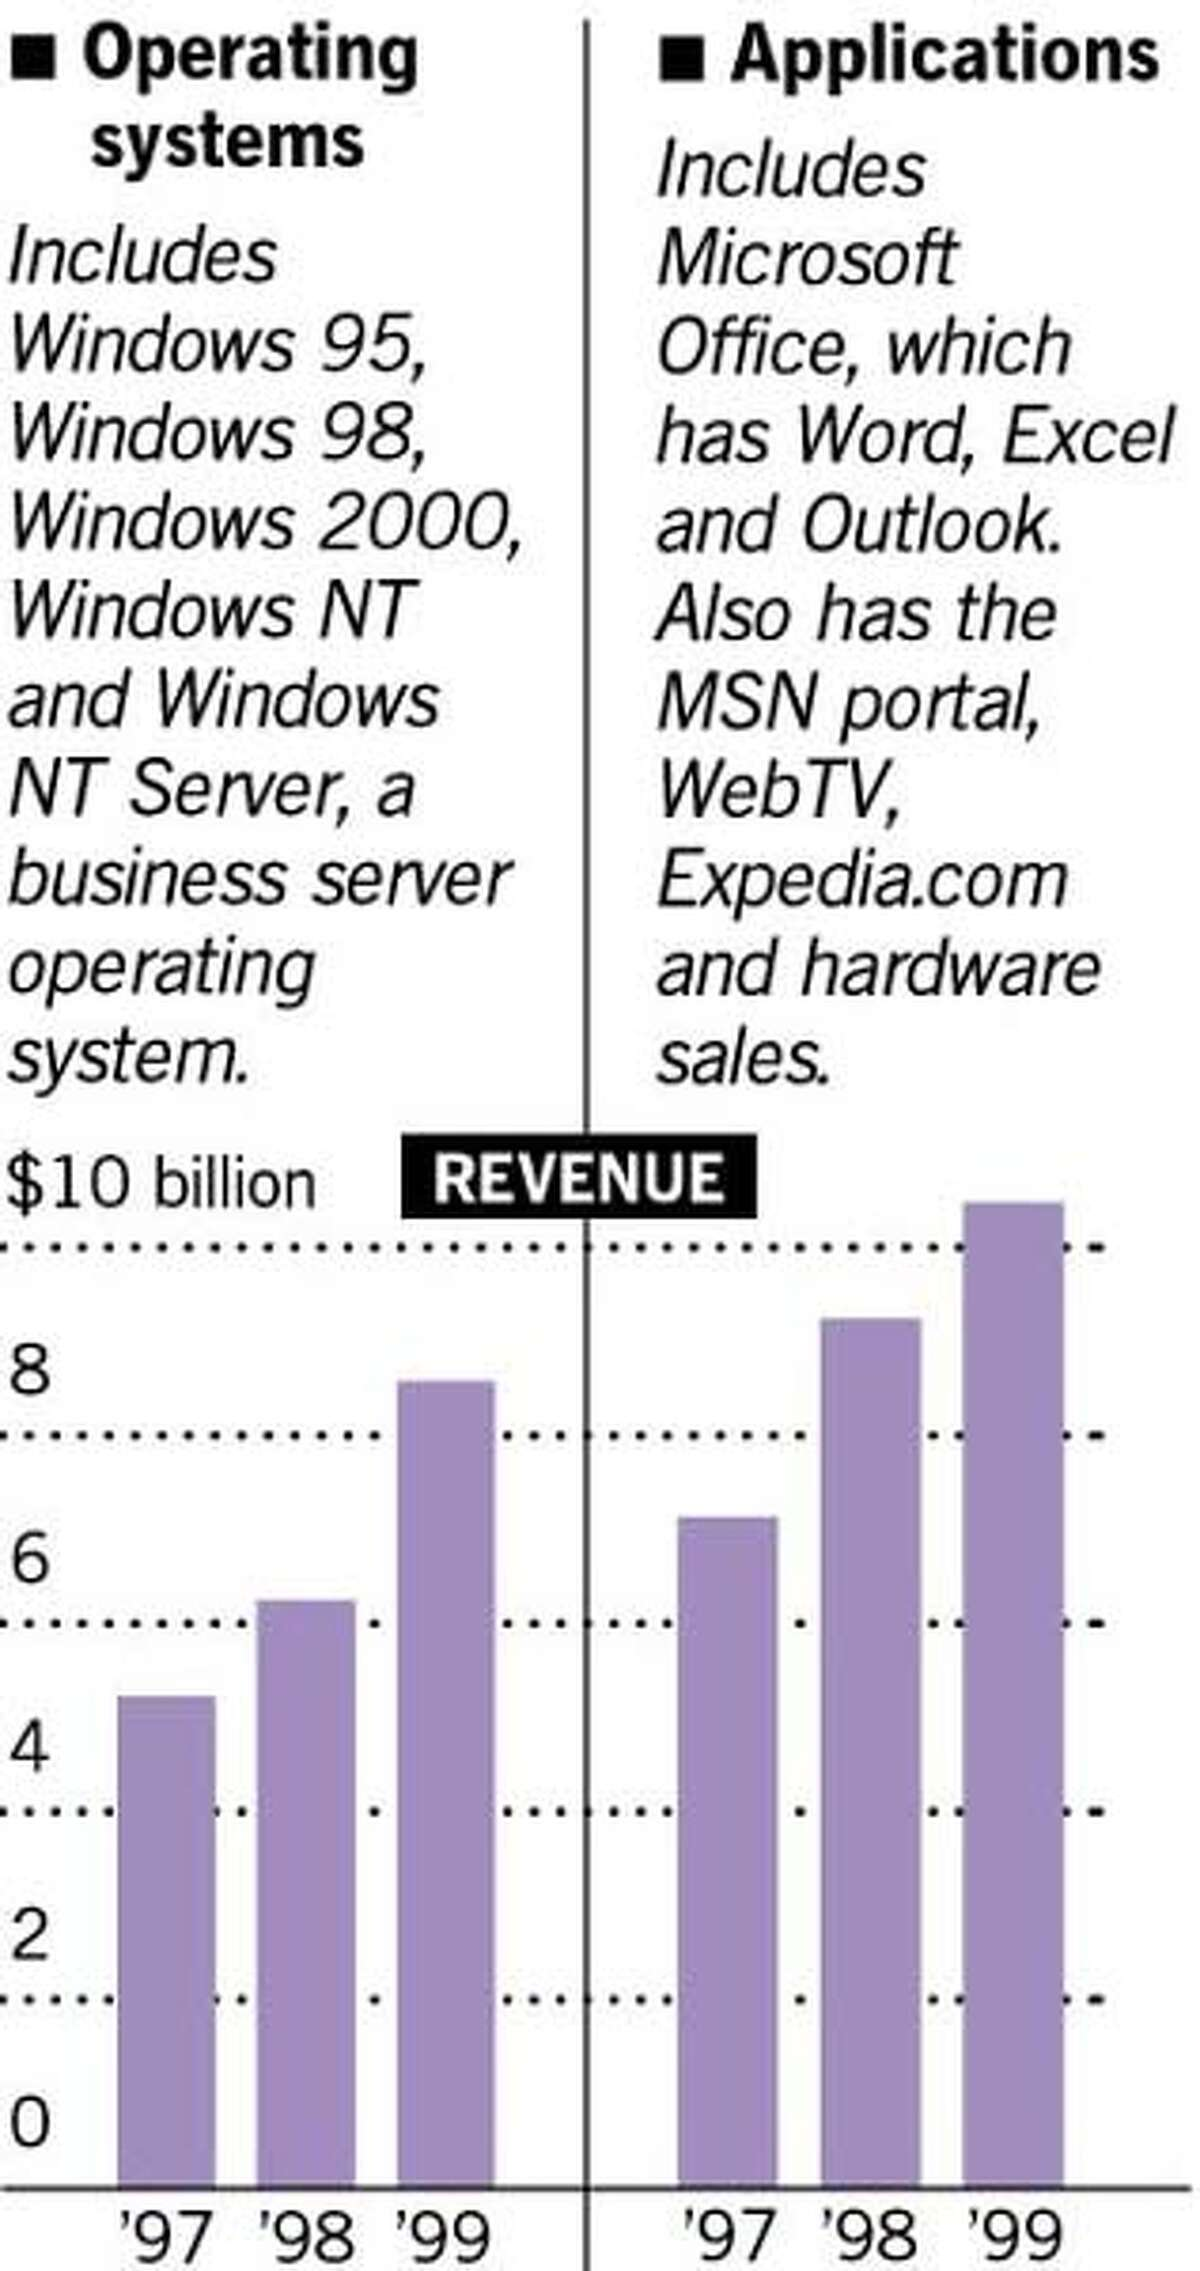 The Two Companies: Operating Systems includes Windows 95, Windows 98, Windows 2000, Windows NT and Windows NT Server, a business server operating system. Applications includes Microsoft Office, which has Word, Excel and Outlook, along with the MSN portal, WebTV, Expedia.com and hardware sales.